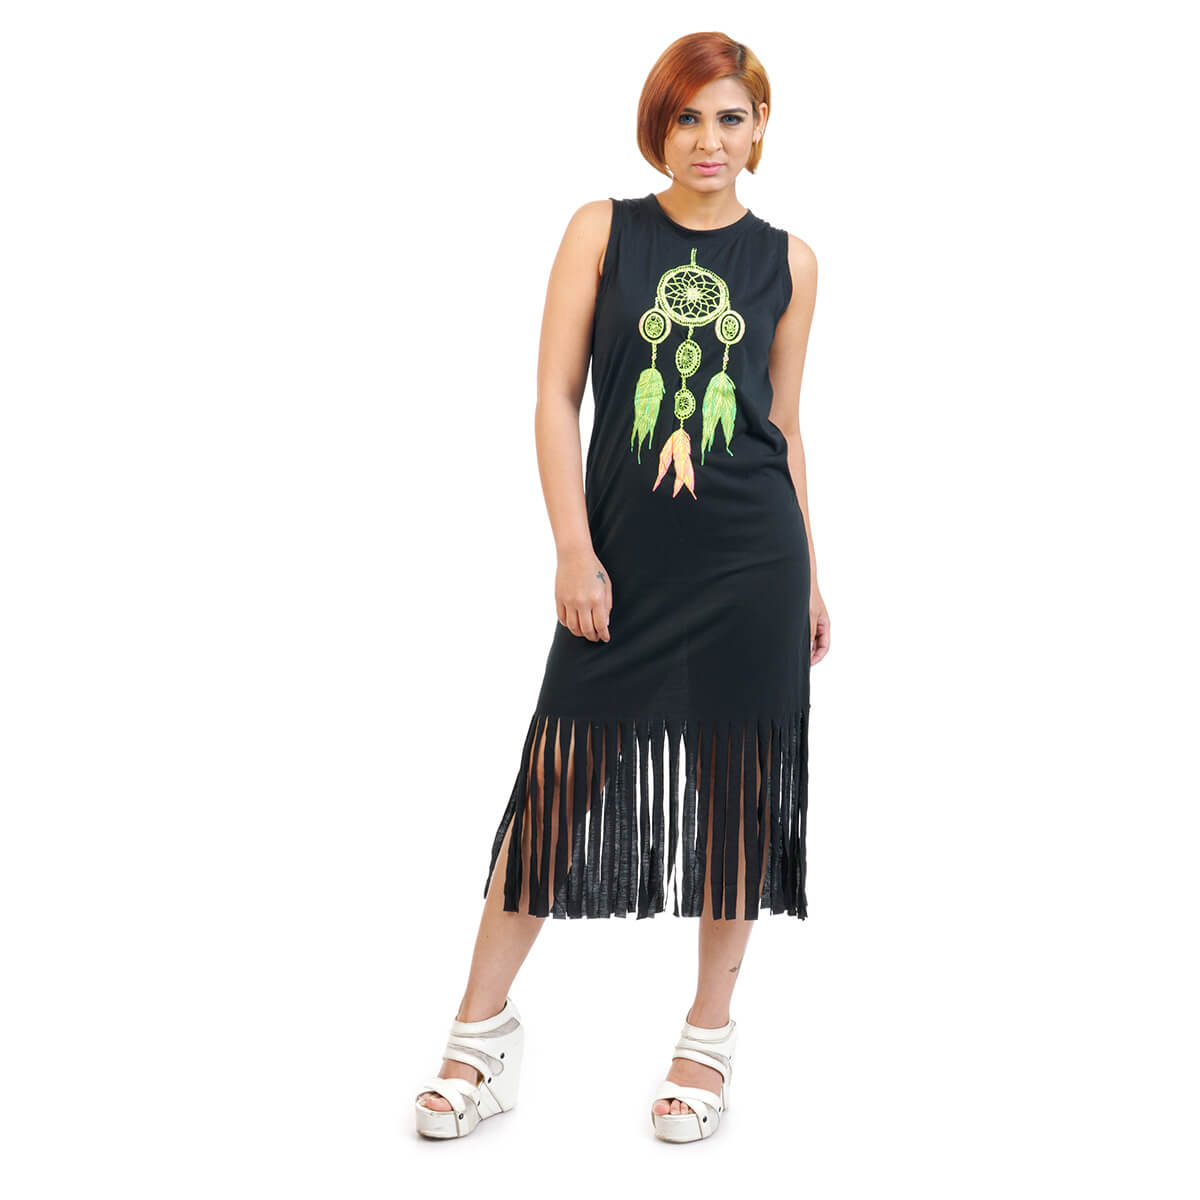 836e8289838 Spring Summer Dreamcatcher Pattern Tassel Dress. Spring Summer Dreamcatcher  Pattern Tassel Dress in black color from Funky Fusion at Best Prices